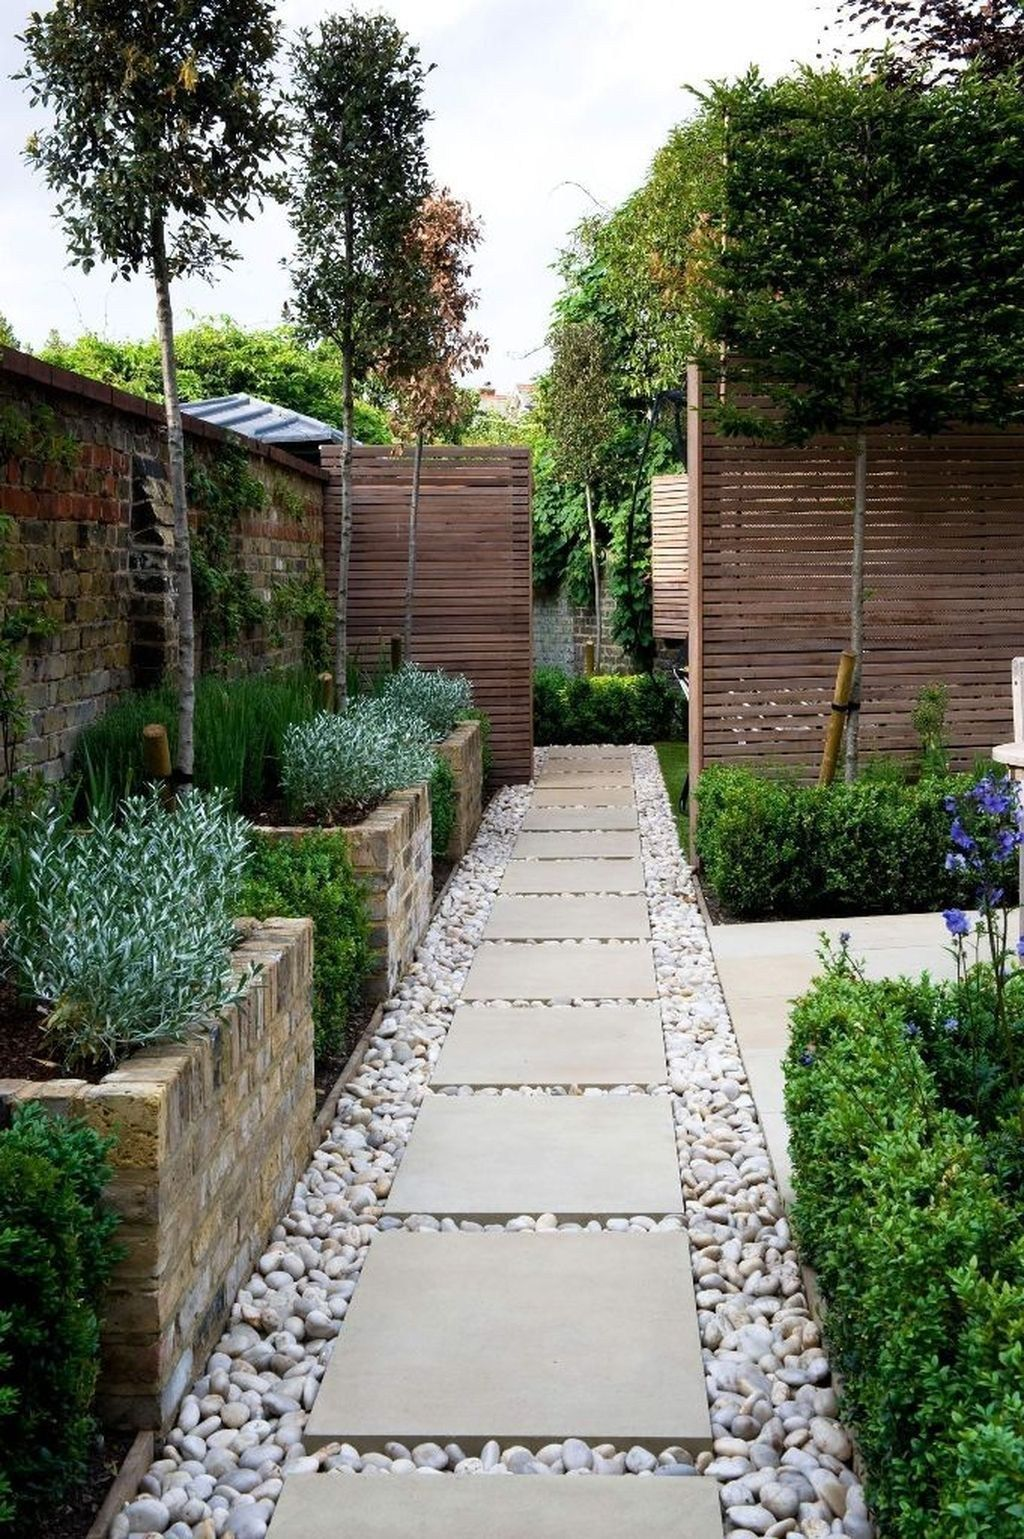 47 Lovely Small Courtyard Garden Design Ideas For Home #smallcourtyardgardens